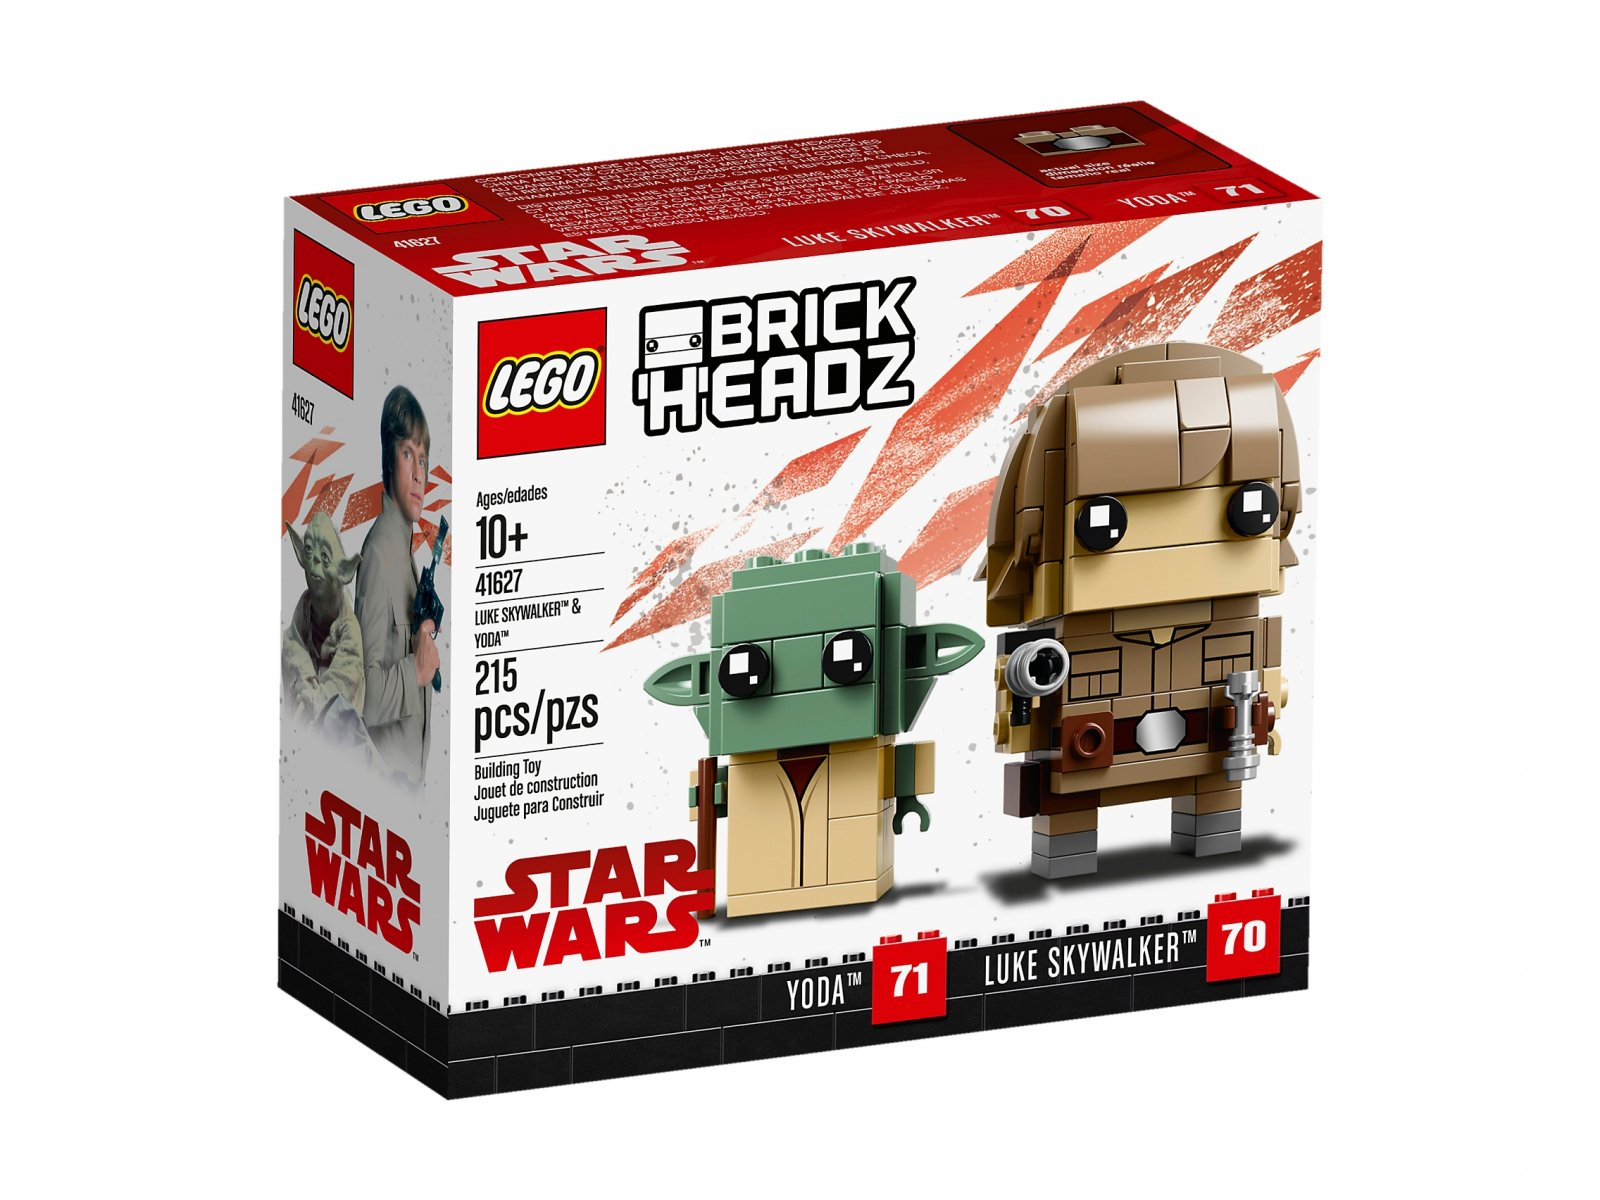 LEGO 41627 BrickHeadz Luke Skywalker™ i Yoda™